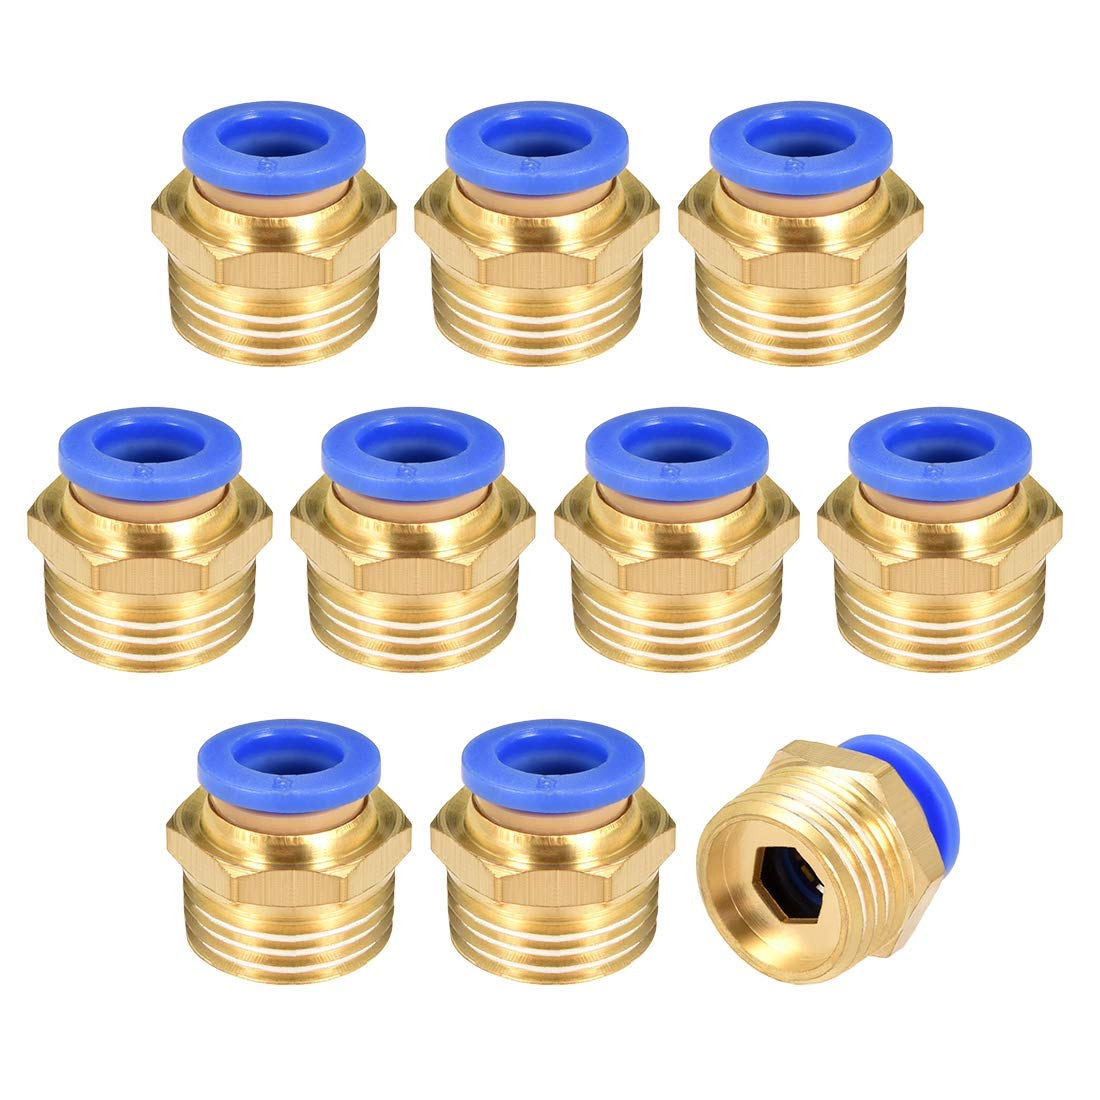 Sturdy 10pcs Ring Lock Oil Tube Compression Ferrule Tube Compression Fitting Connector Tube 4-12mm Female Thread 1//8 1//4 3//8 1//2 BSP Size : OD tube 10mm, Thread Specification : 38